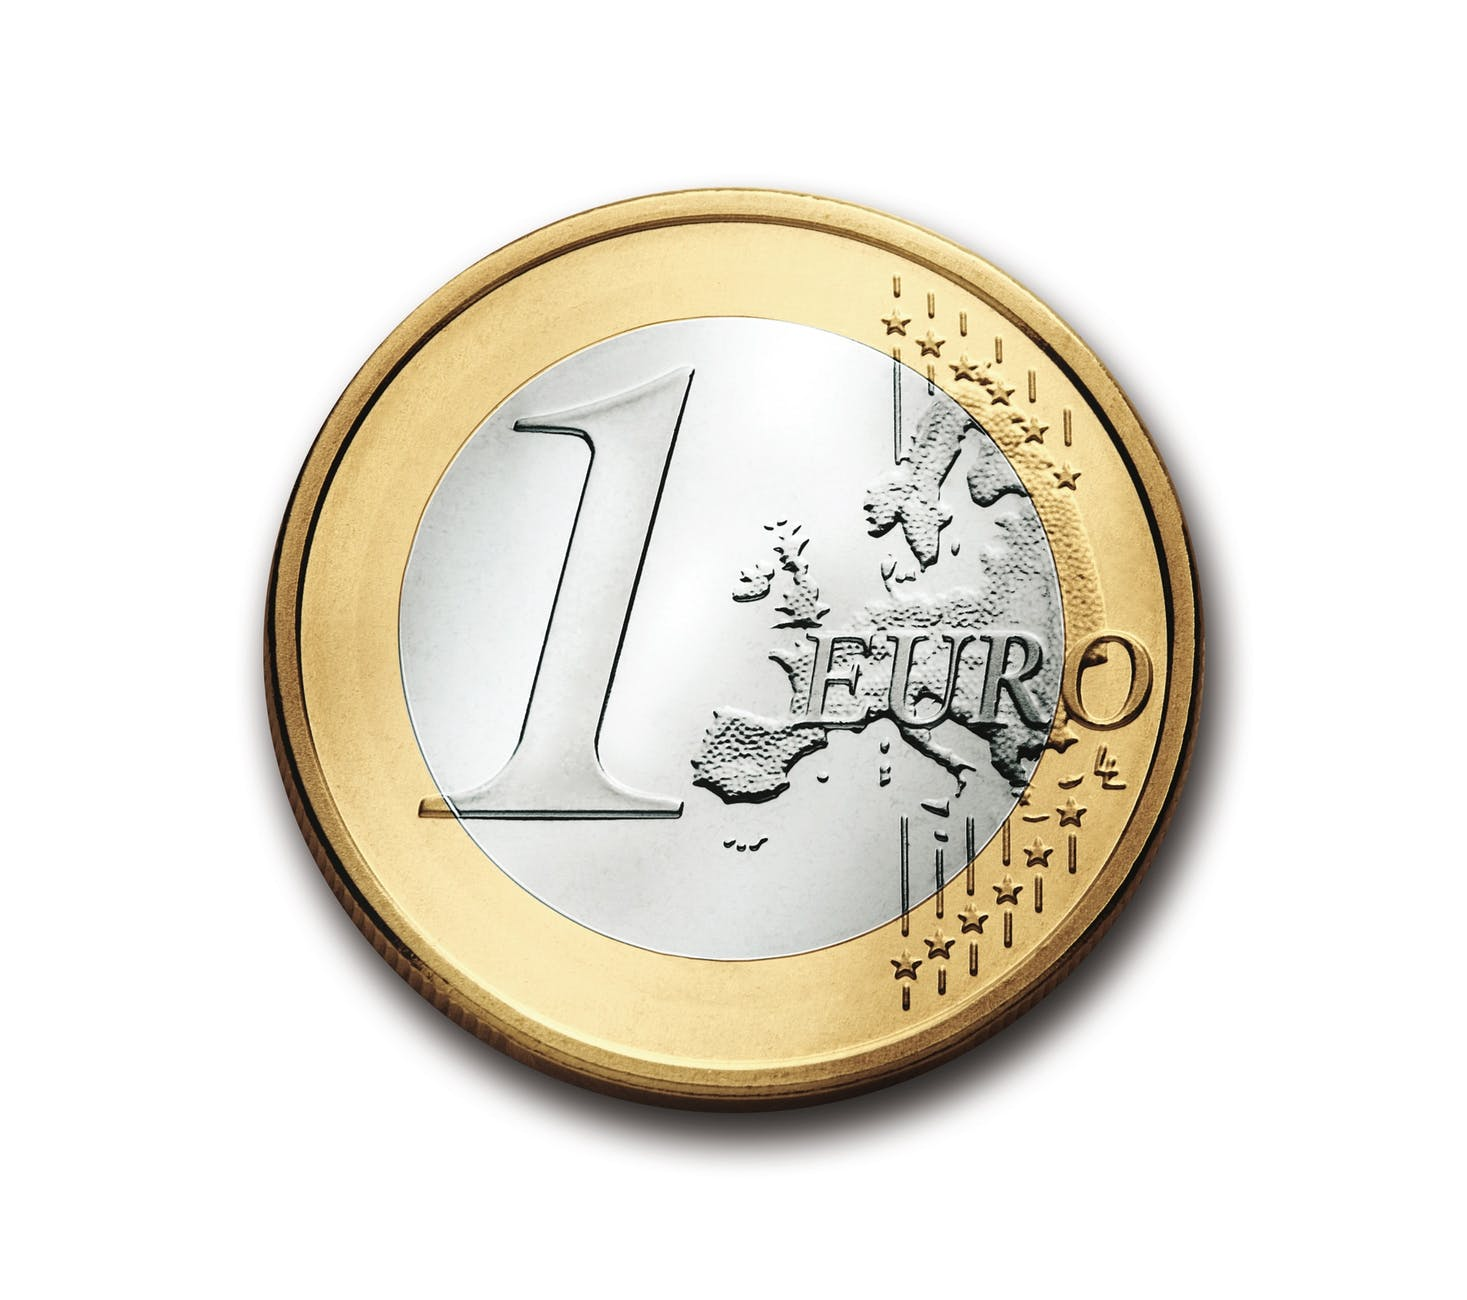 euro-1-coin-currency-53443.jpeg